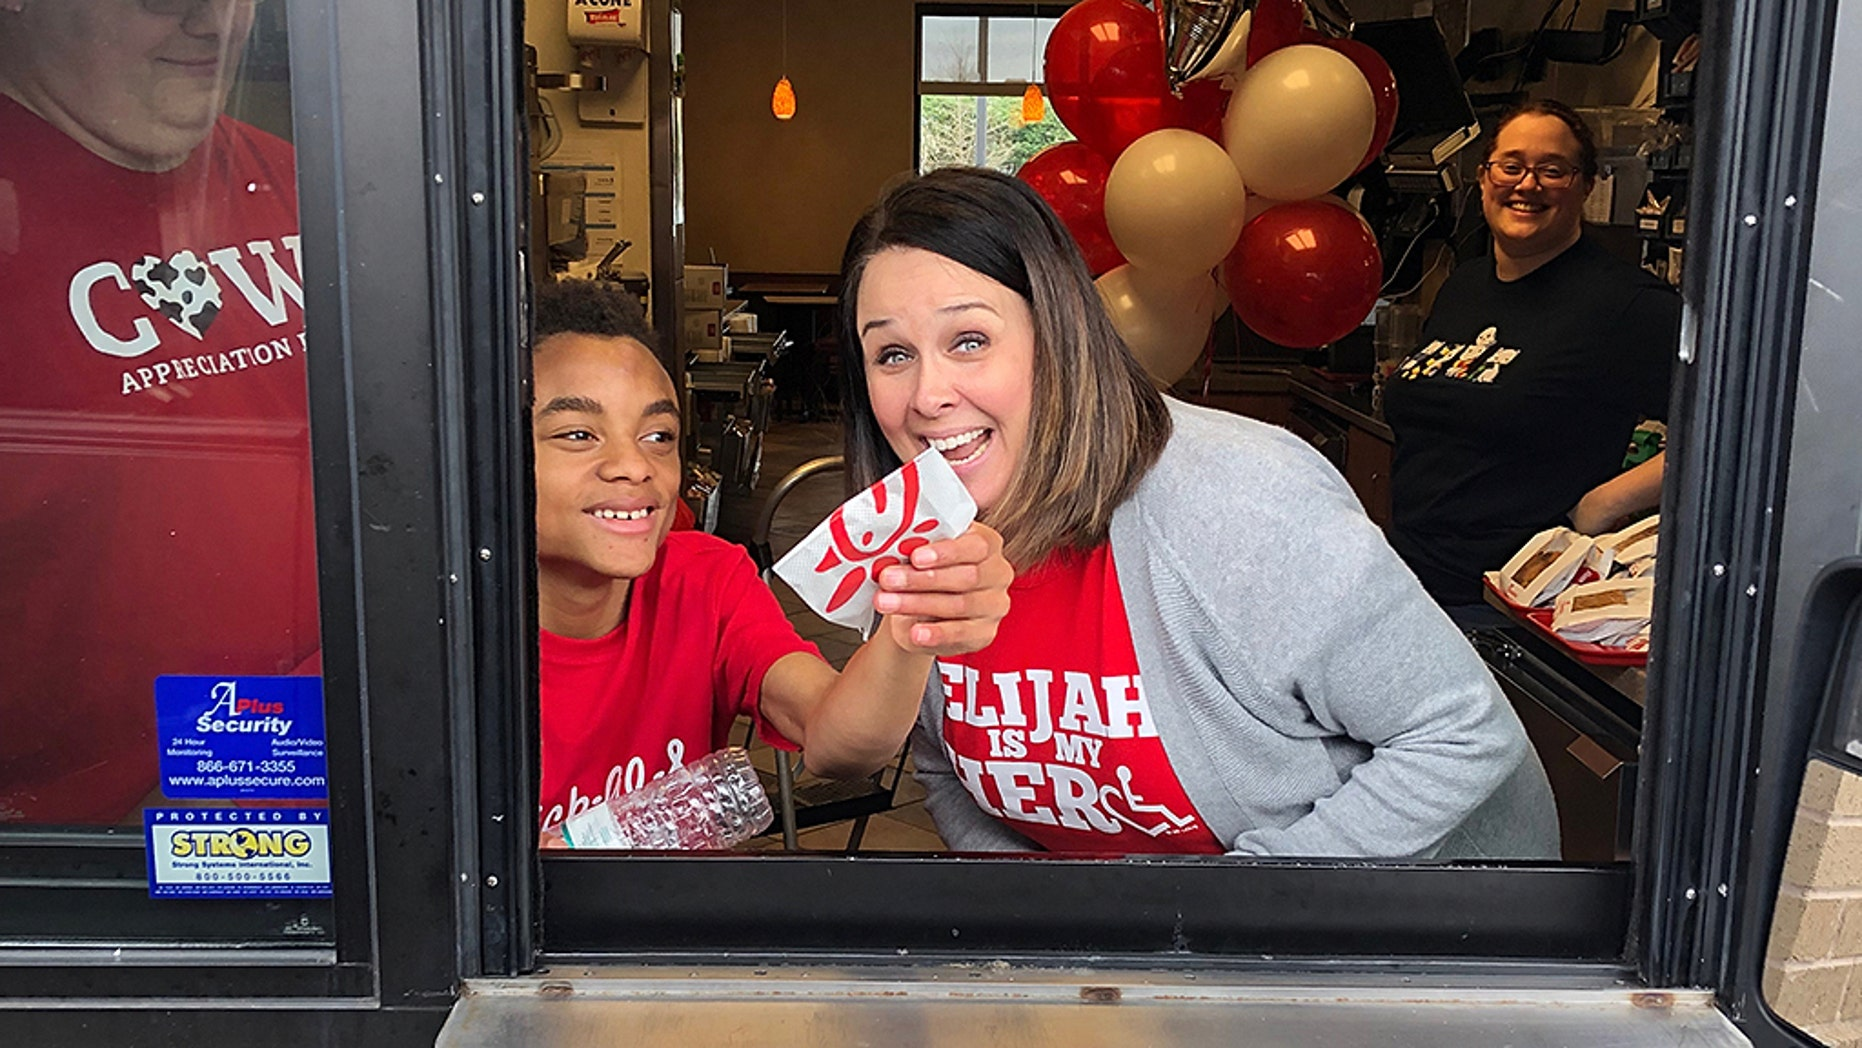 A Chick-fil-A in Alabama opened its doors Sunday for a little boy celebrating his birthday. <br>